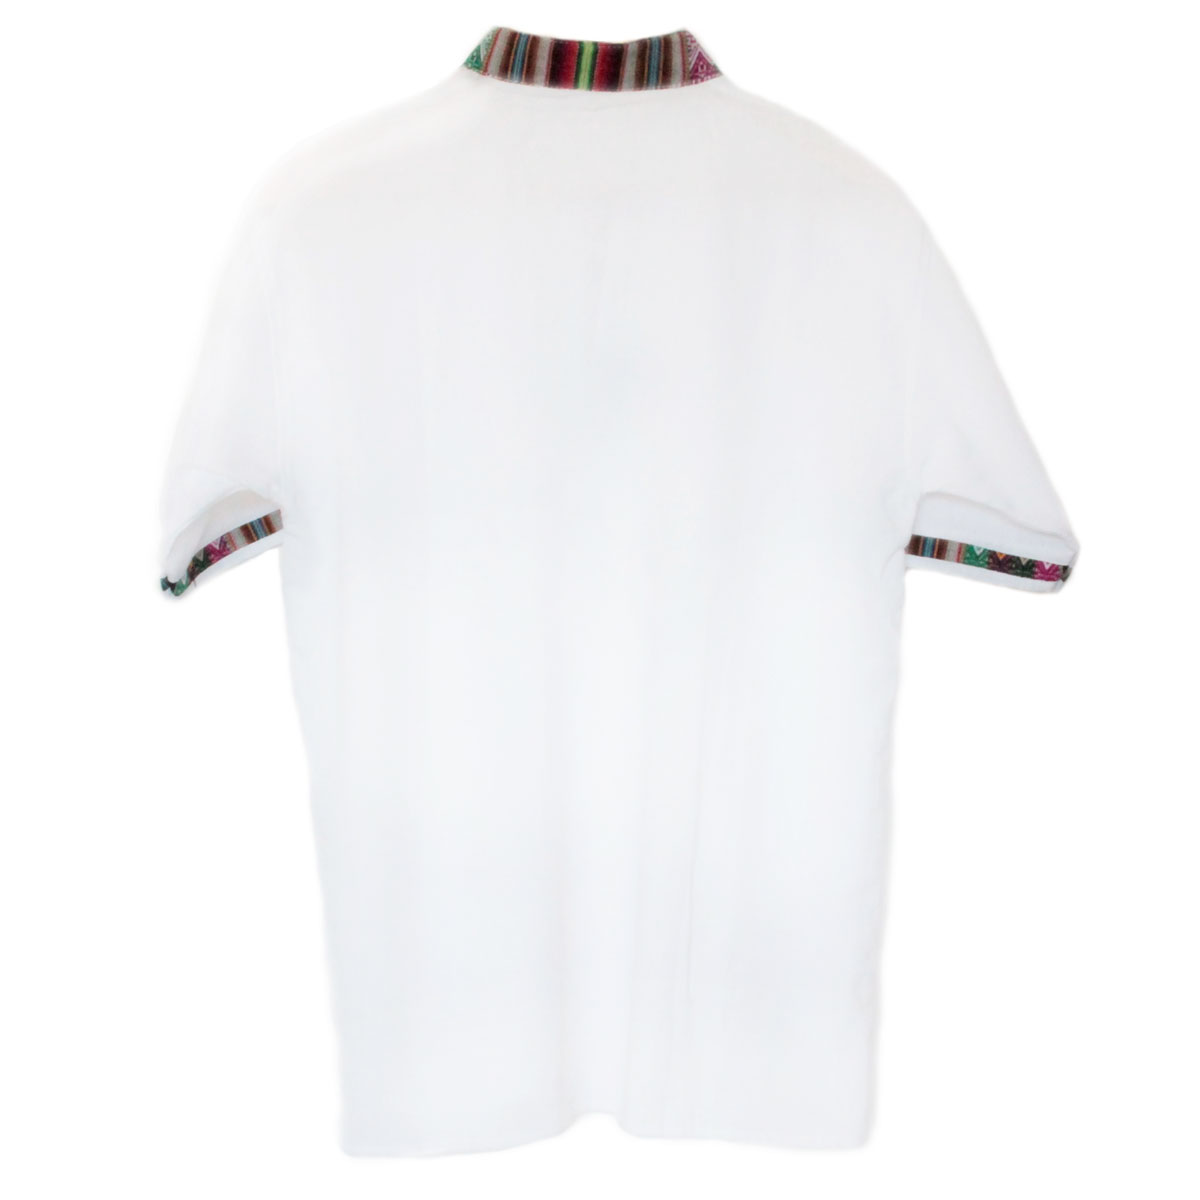 Inka-Products-Chemise Col Mao Homme-Tissu Traditionnel Andin Coloré-2